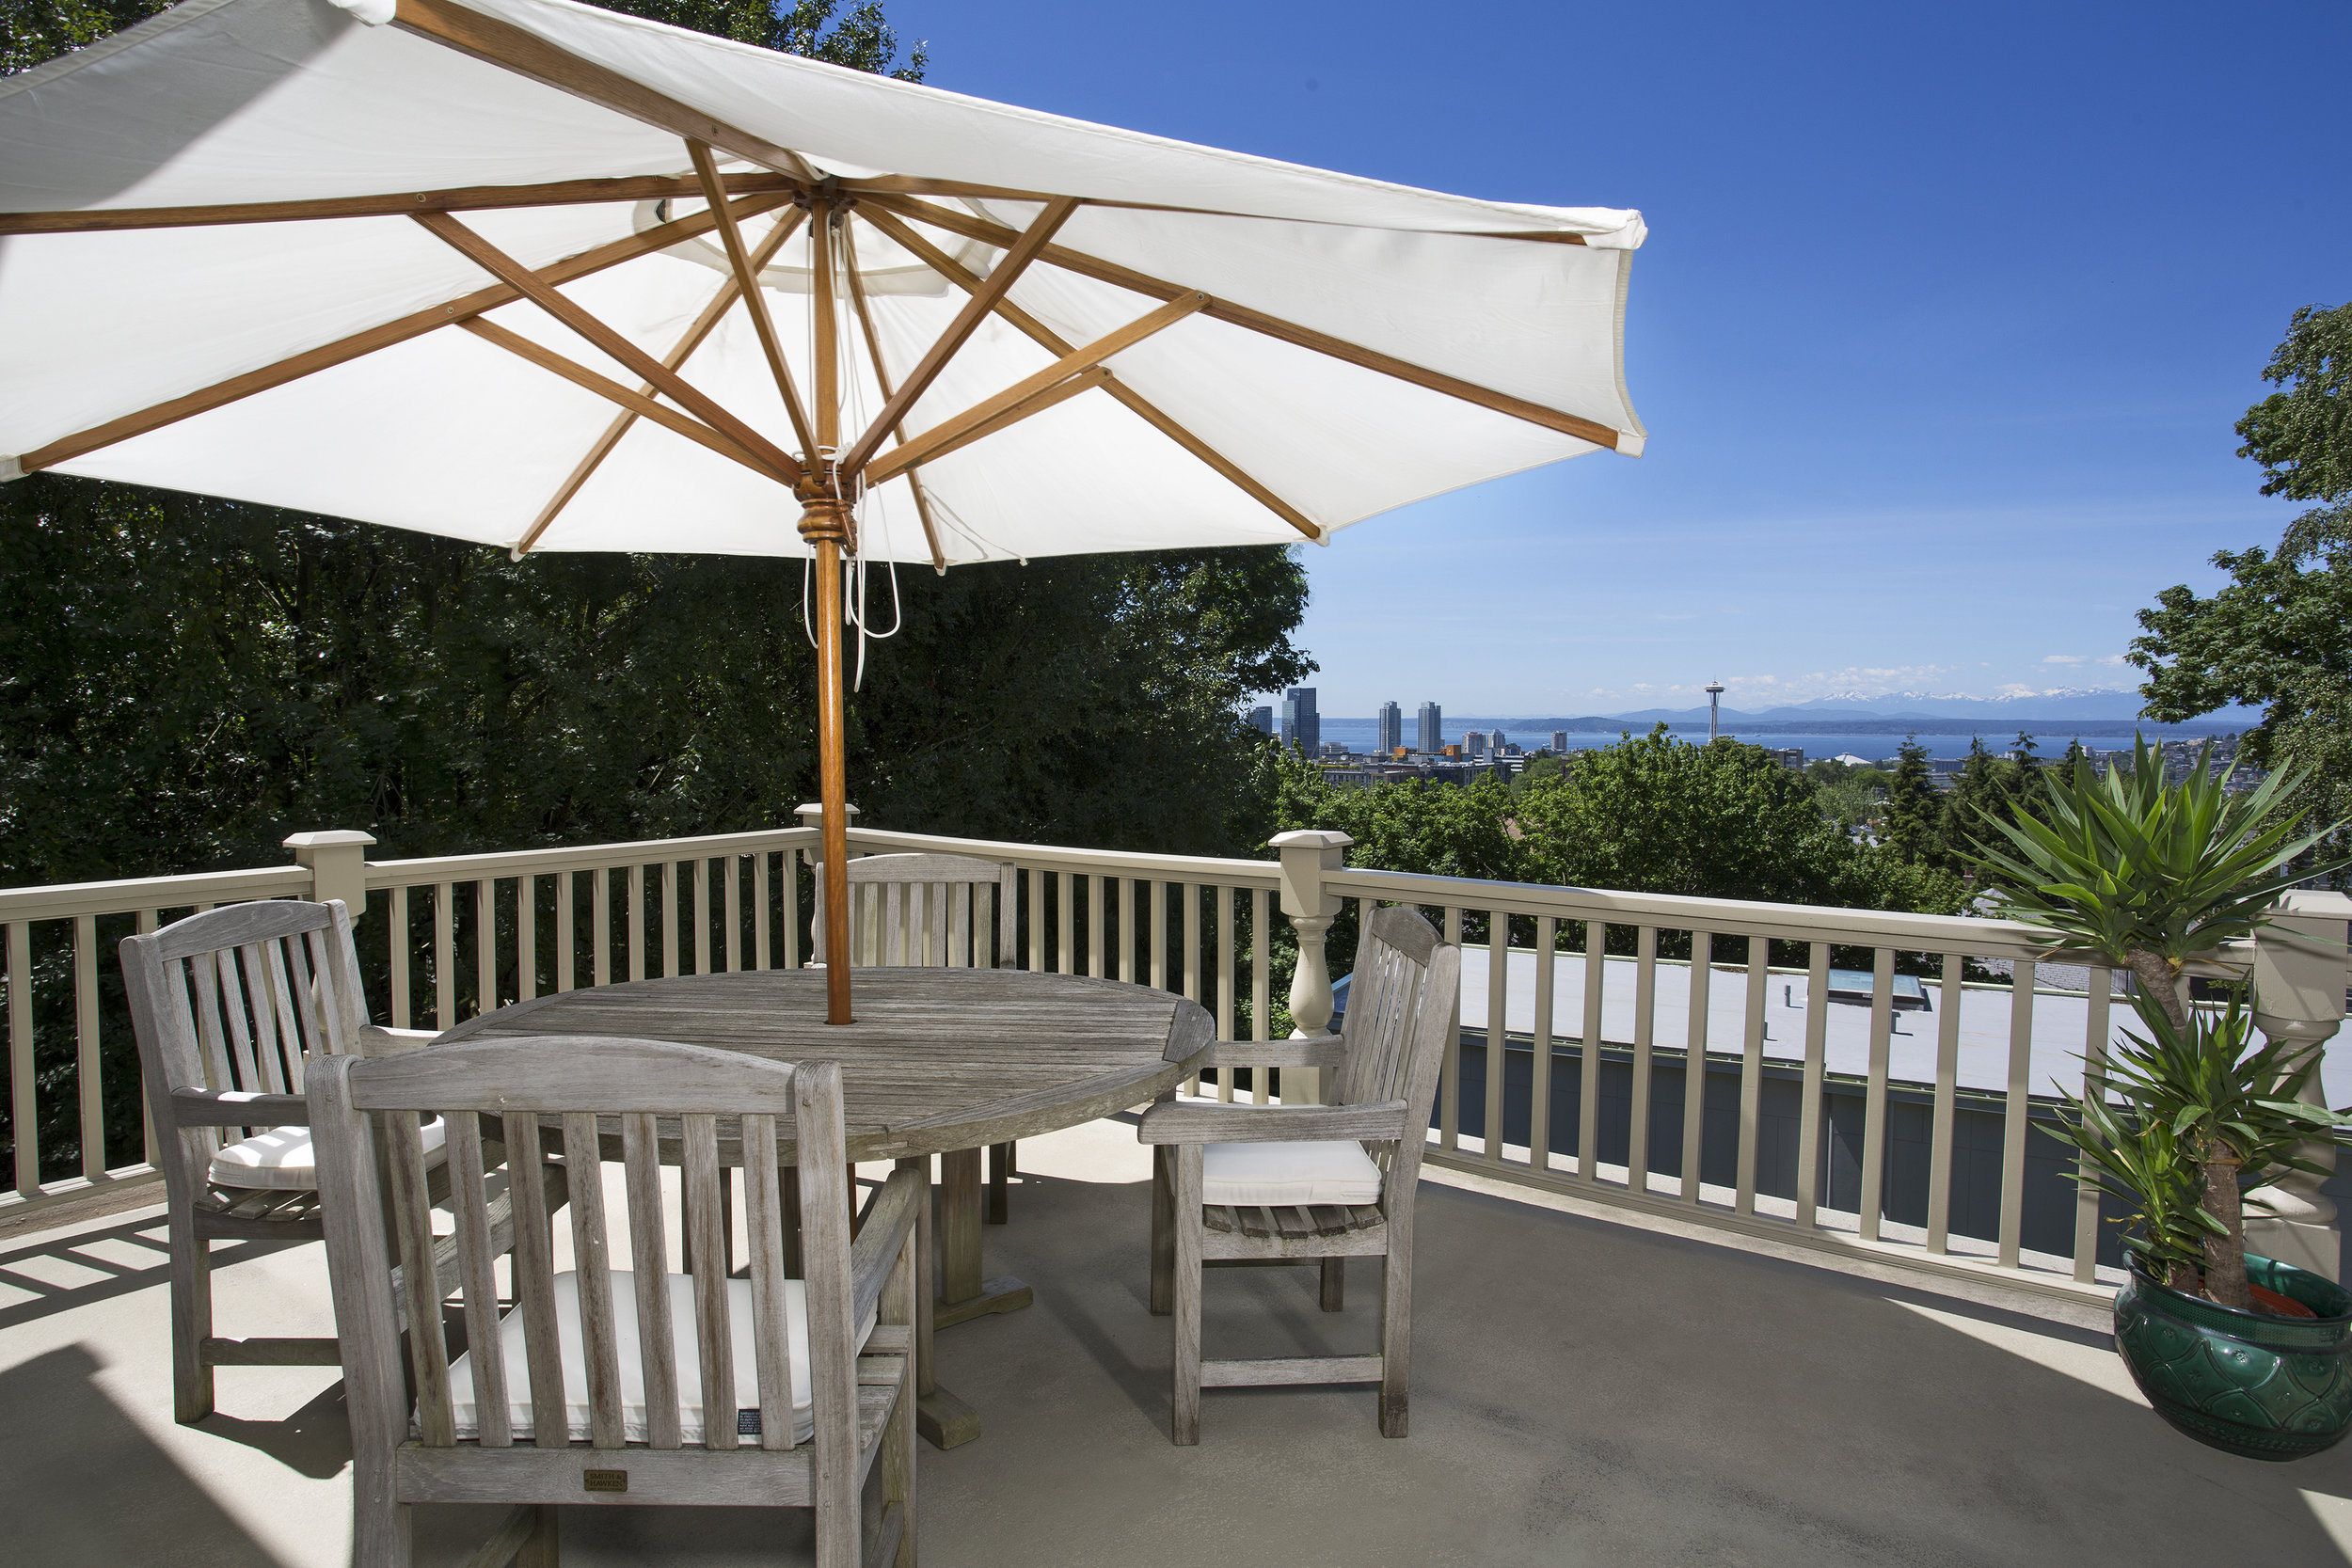 INCREDIBLE VIEW DECK